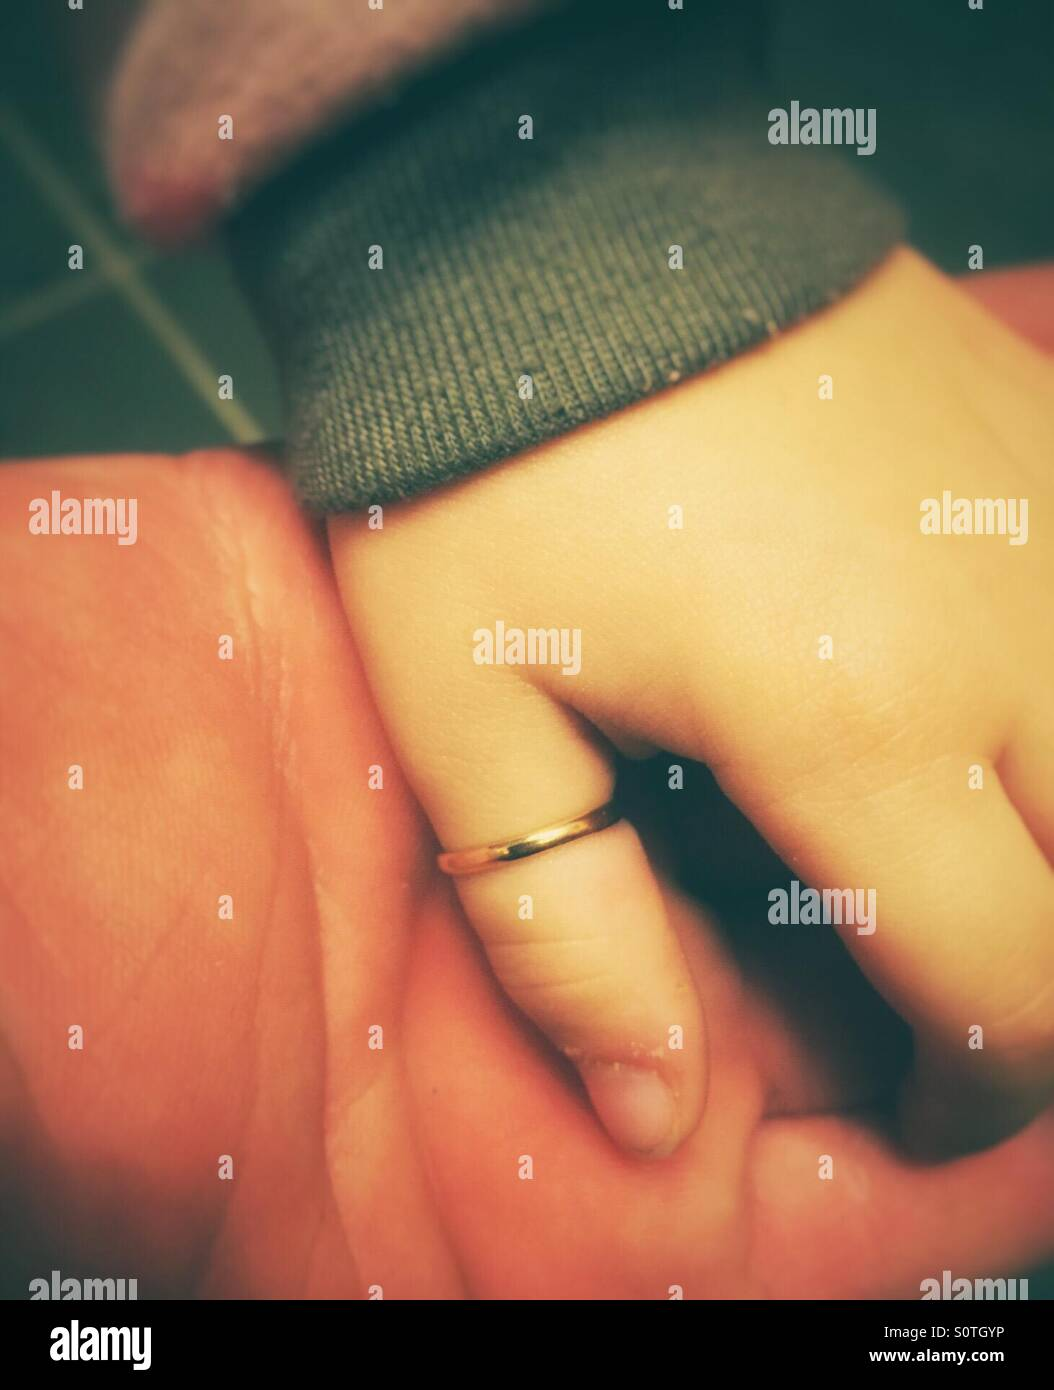 Young girl showing her thumb ring Stock Photo, Royalty Free Image ...